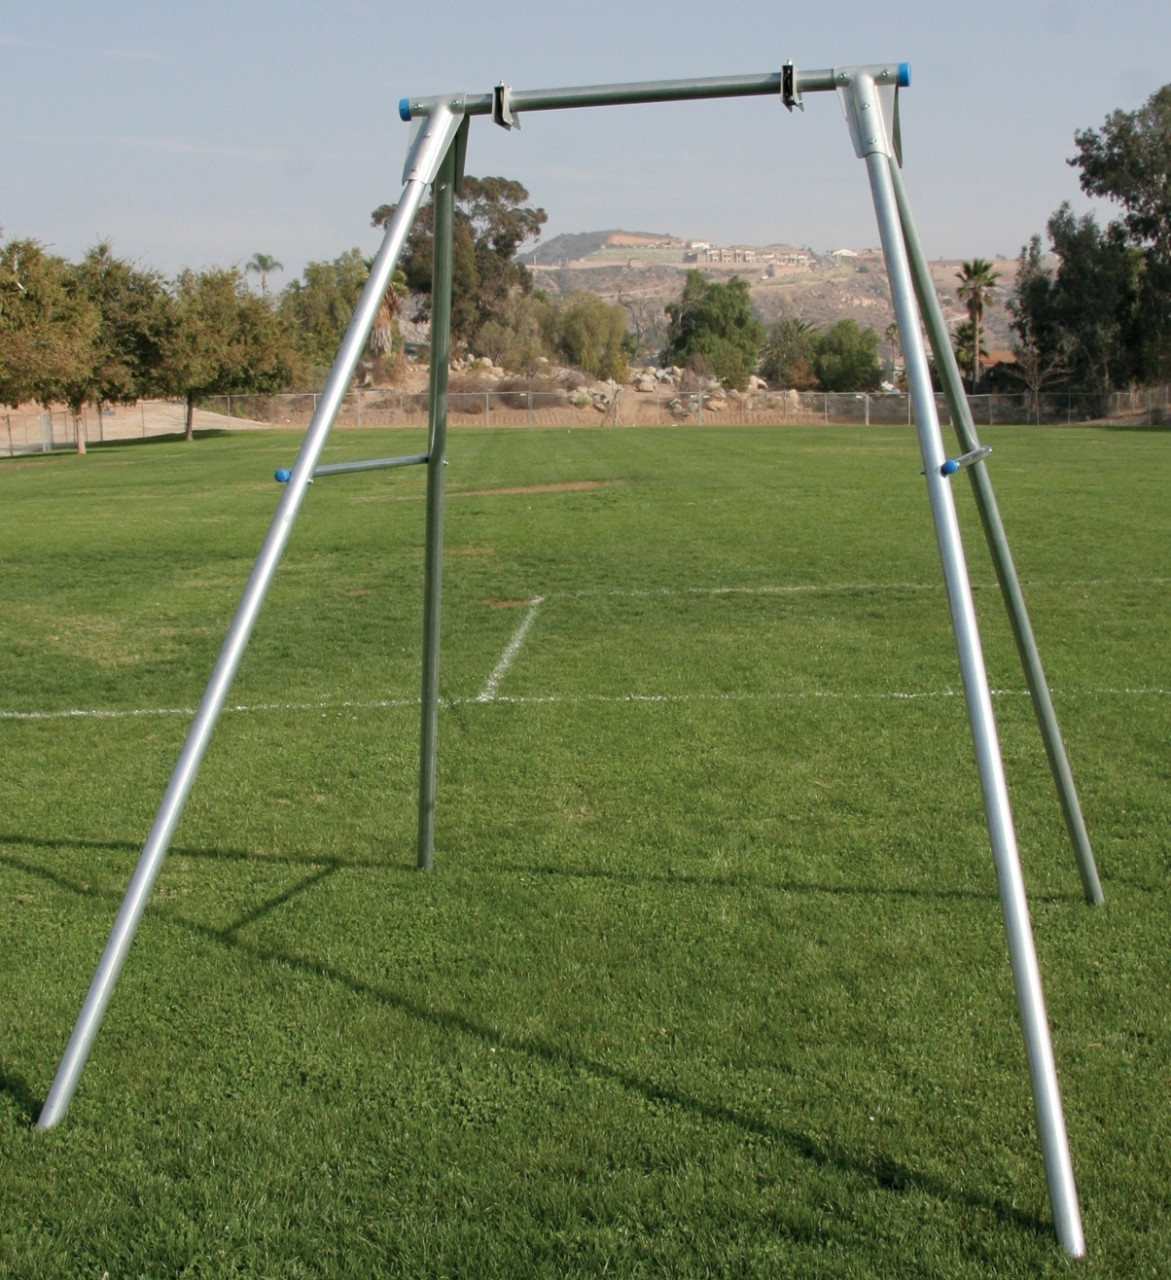 Pediatric swings swing frames special needs swing on for How to build a swing set for adults